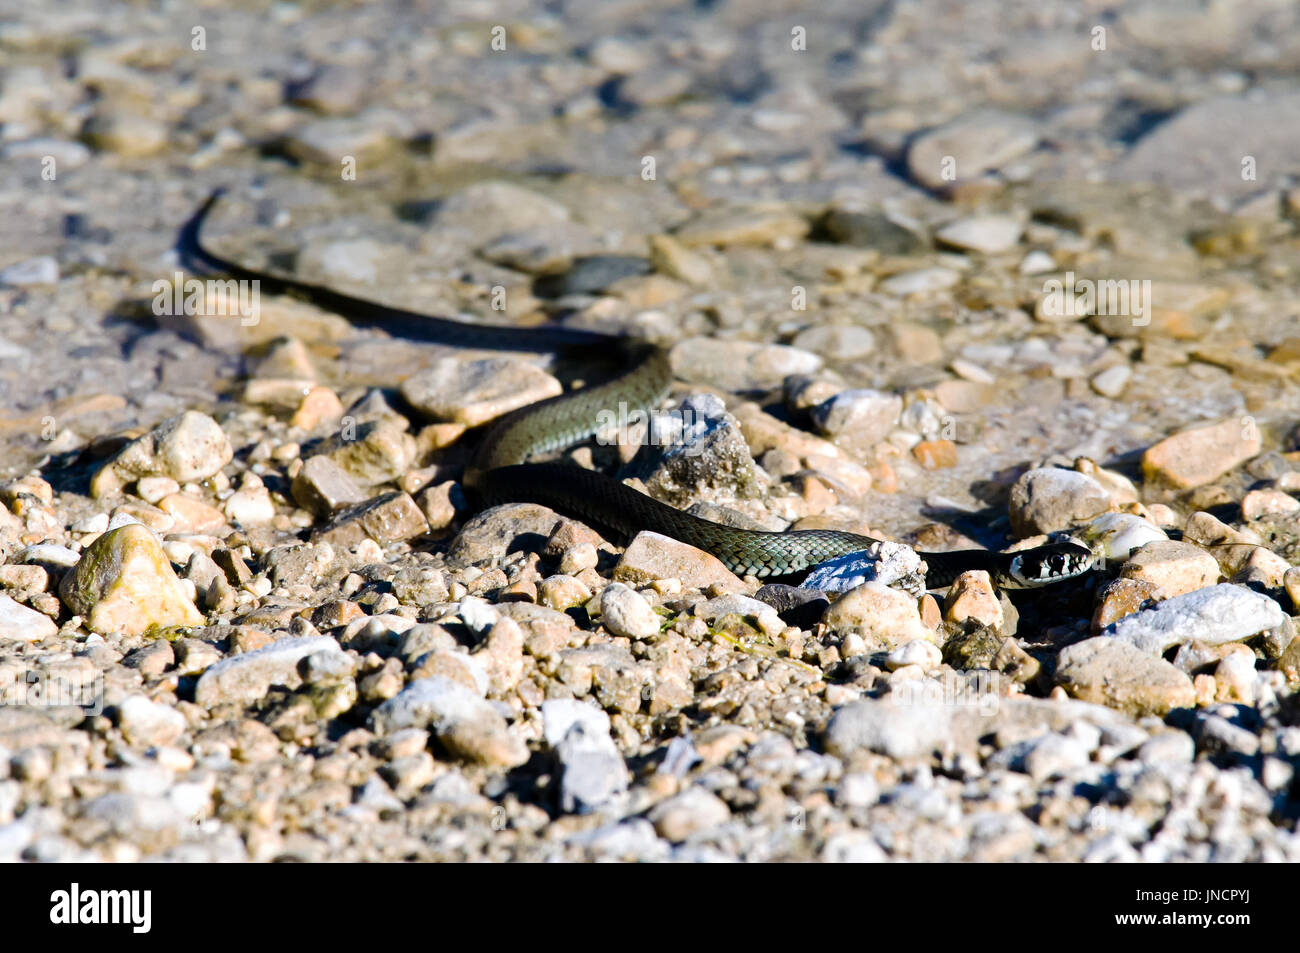 The grass snake (Natrix natrix) shot on a bank of a lake. - Stock Image